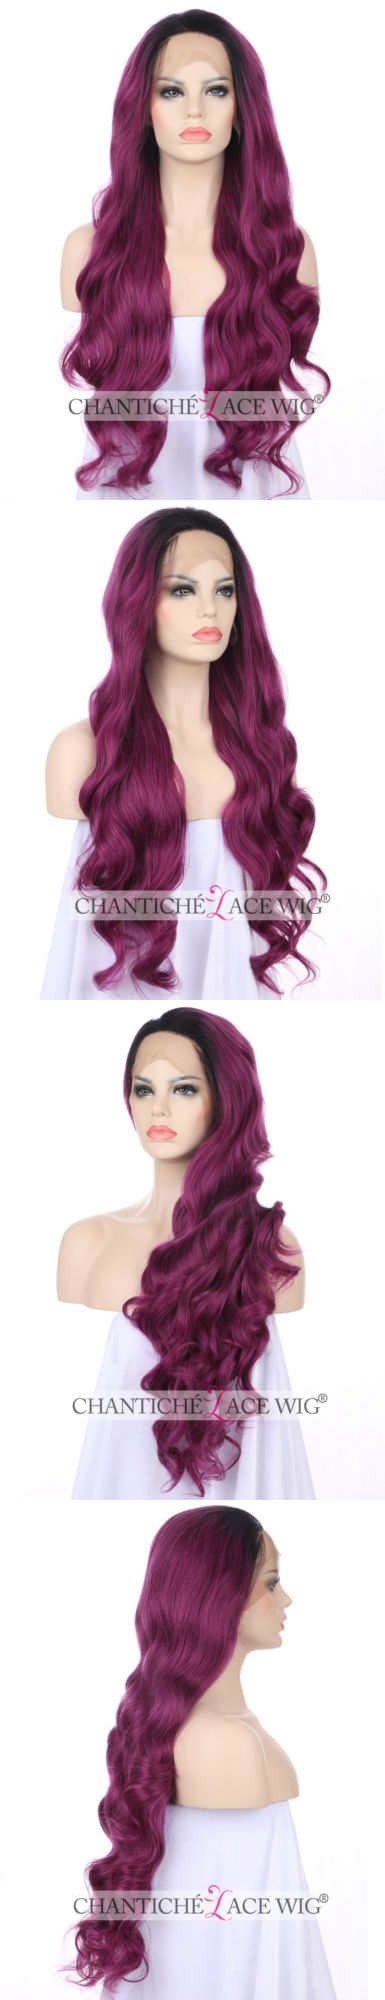 Wigs and Hairpieces: Purple Front Lace Wigs Heat Resistant Synthetic Hair Long Wavy Wig For Women 24 -> BUY IT NOW ONLY: $45.99 on eBay!